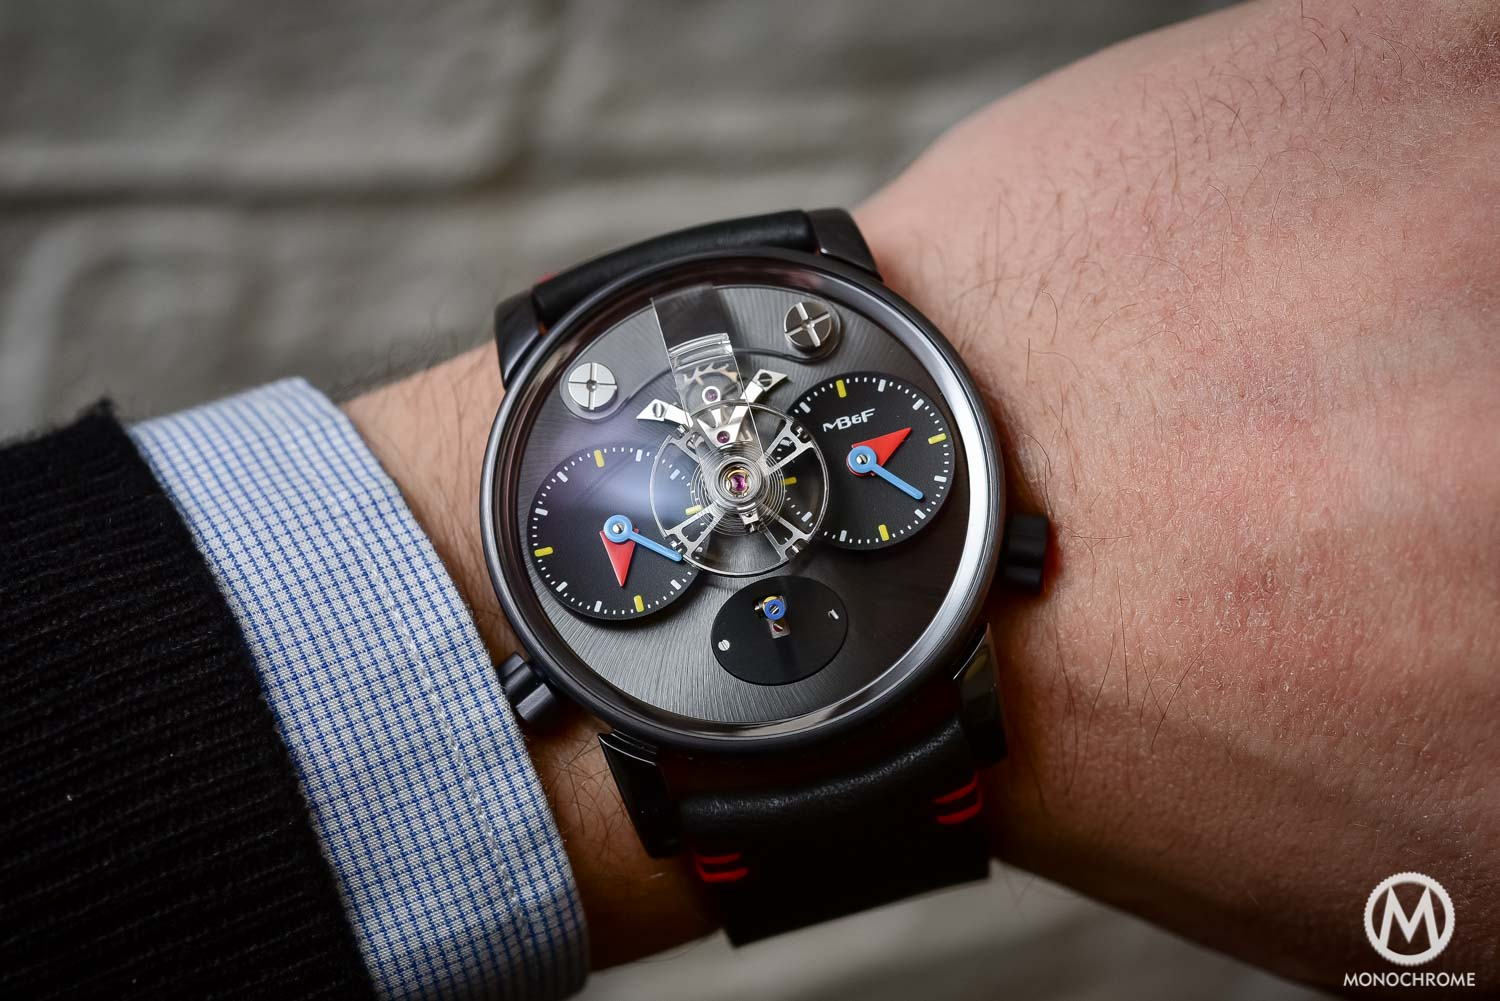 Hands-on Review - The new MB&F LM1 Silberstein